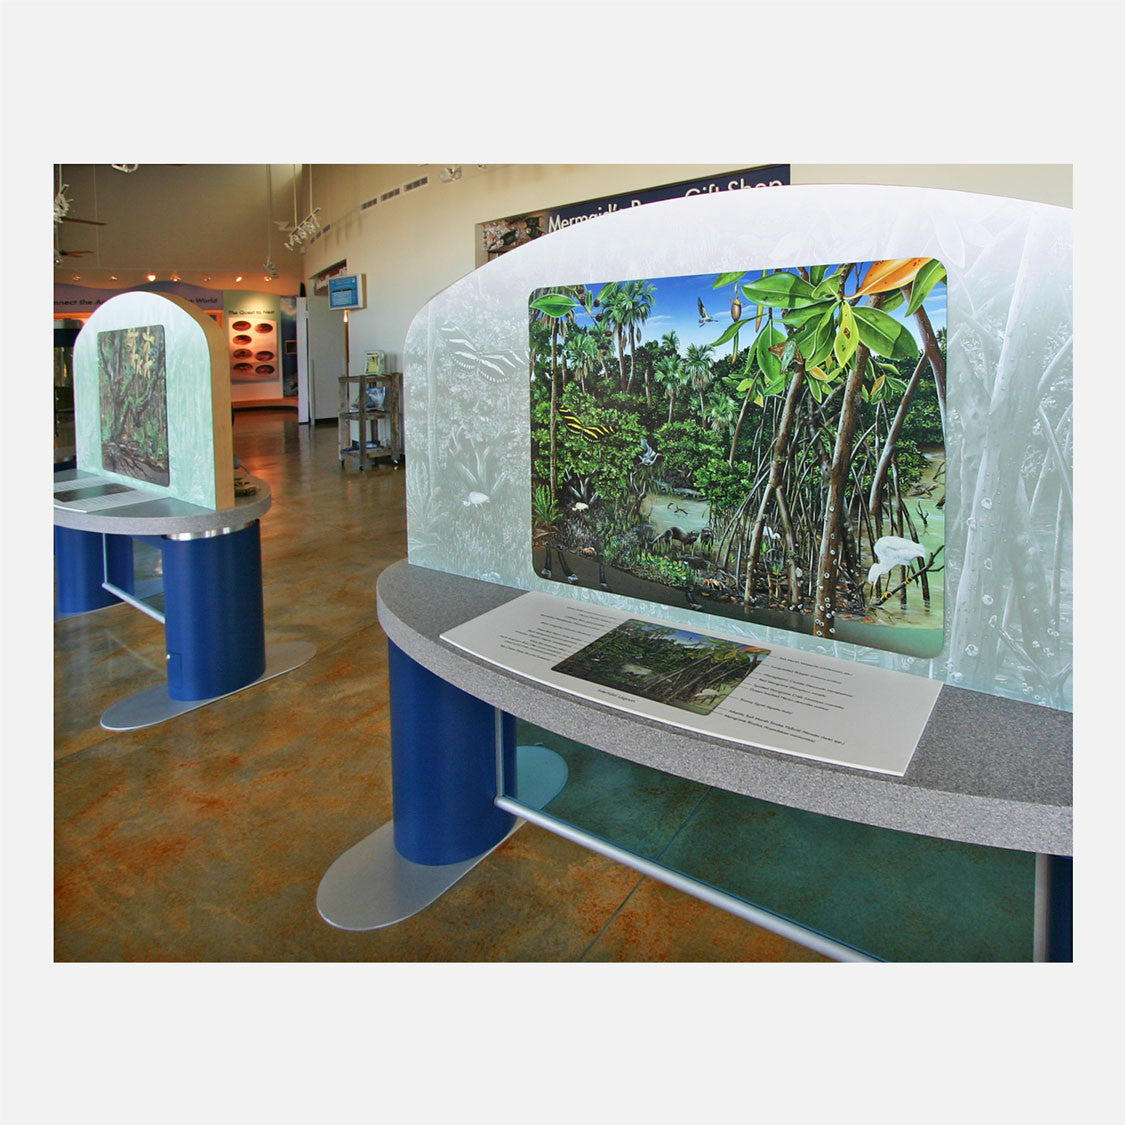 This beautifully illustrated display describes the flora and fauna of the intertidal habitat of an east coast Florida barrier island.